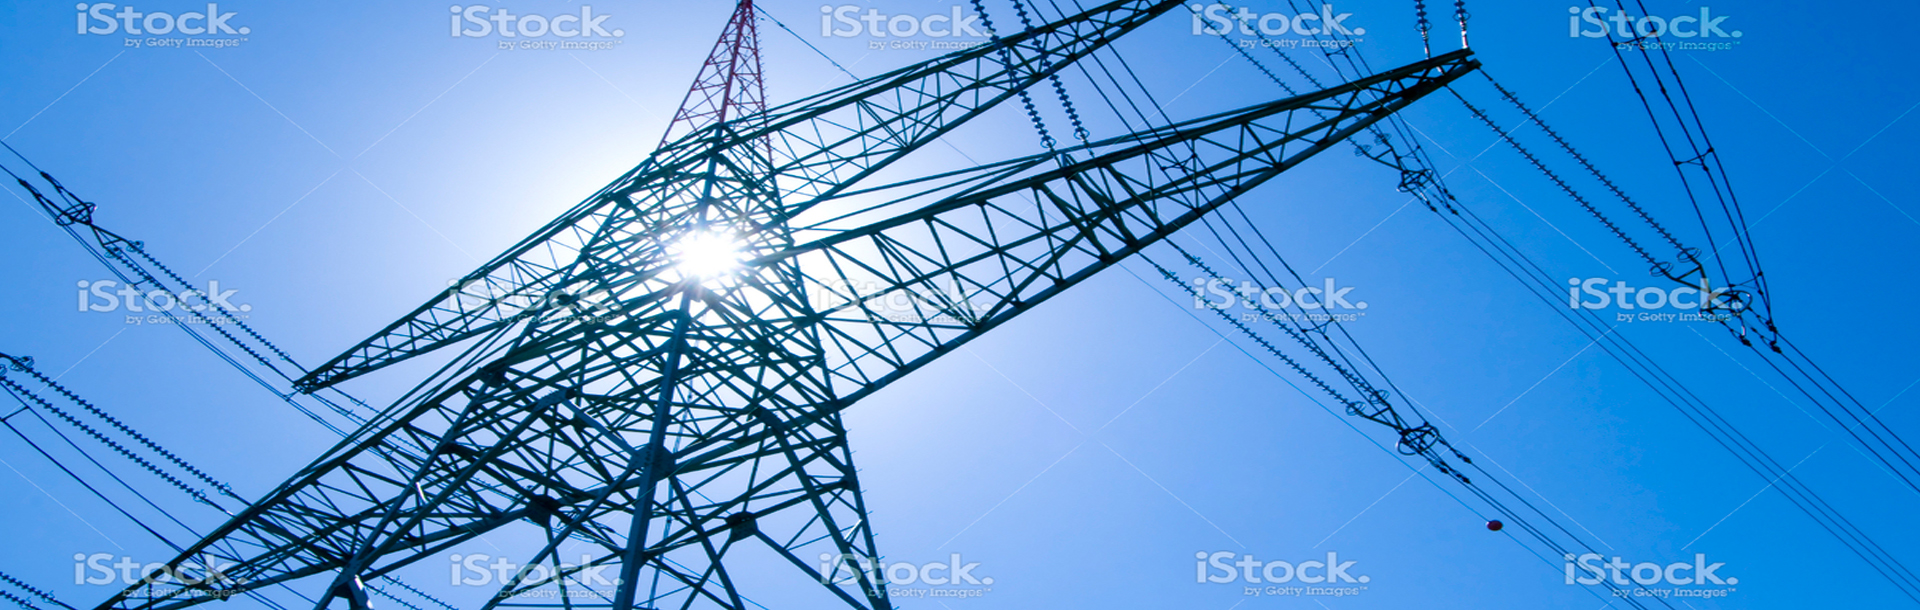 Pre Paid Electricity Pay As You Go Electricity